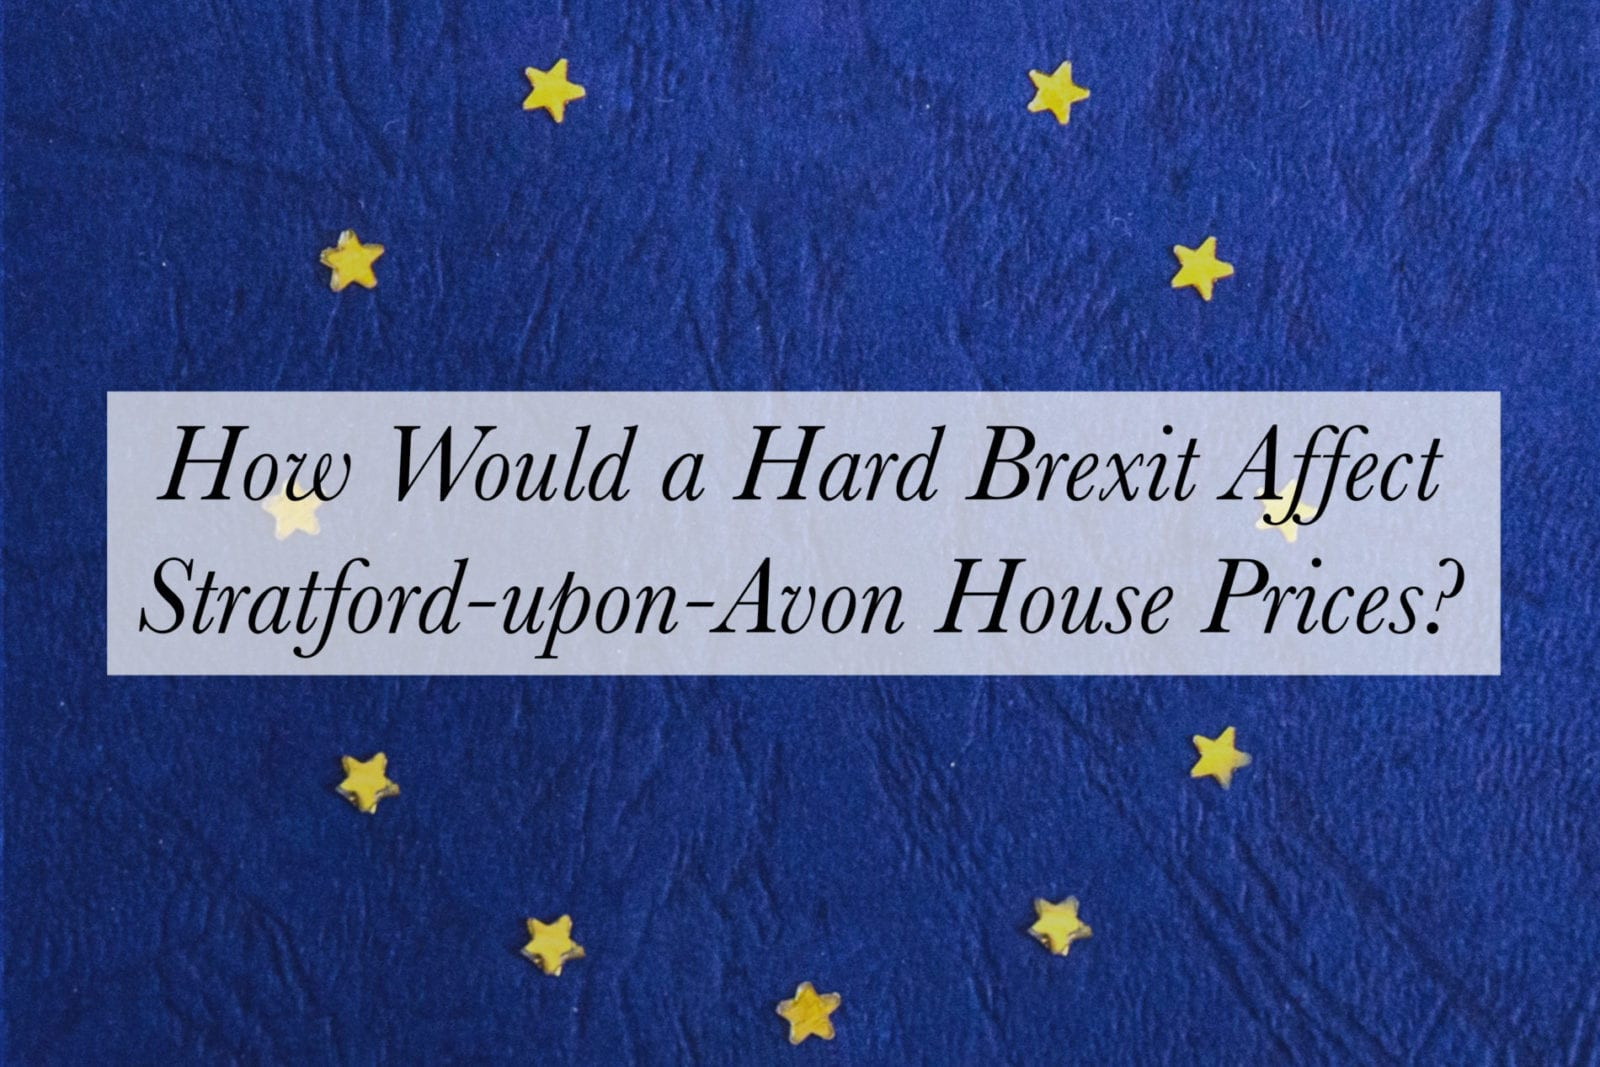 How Would a Hard Brexit Affect Stratford-upon-Avon House Prices?